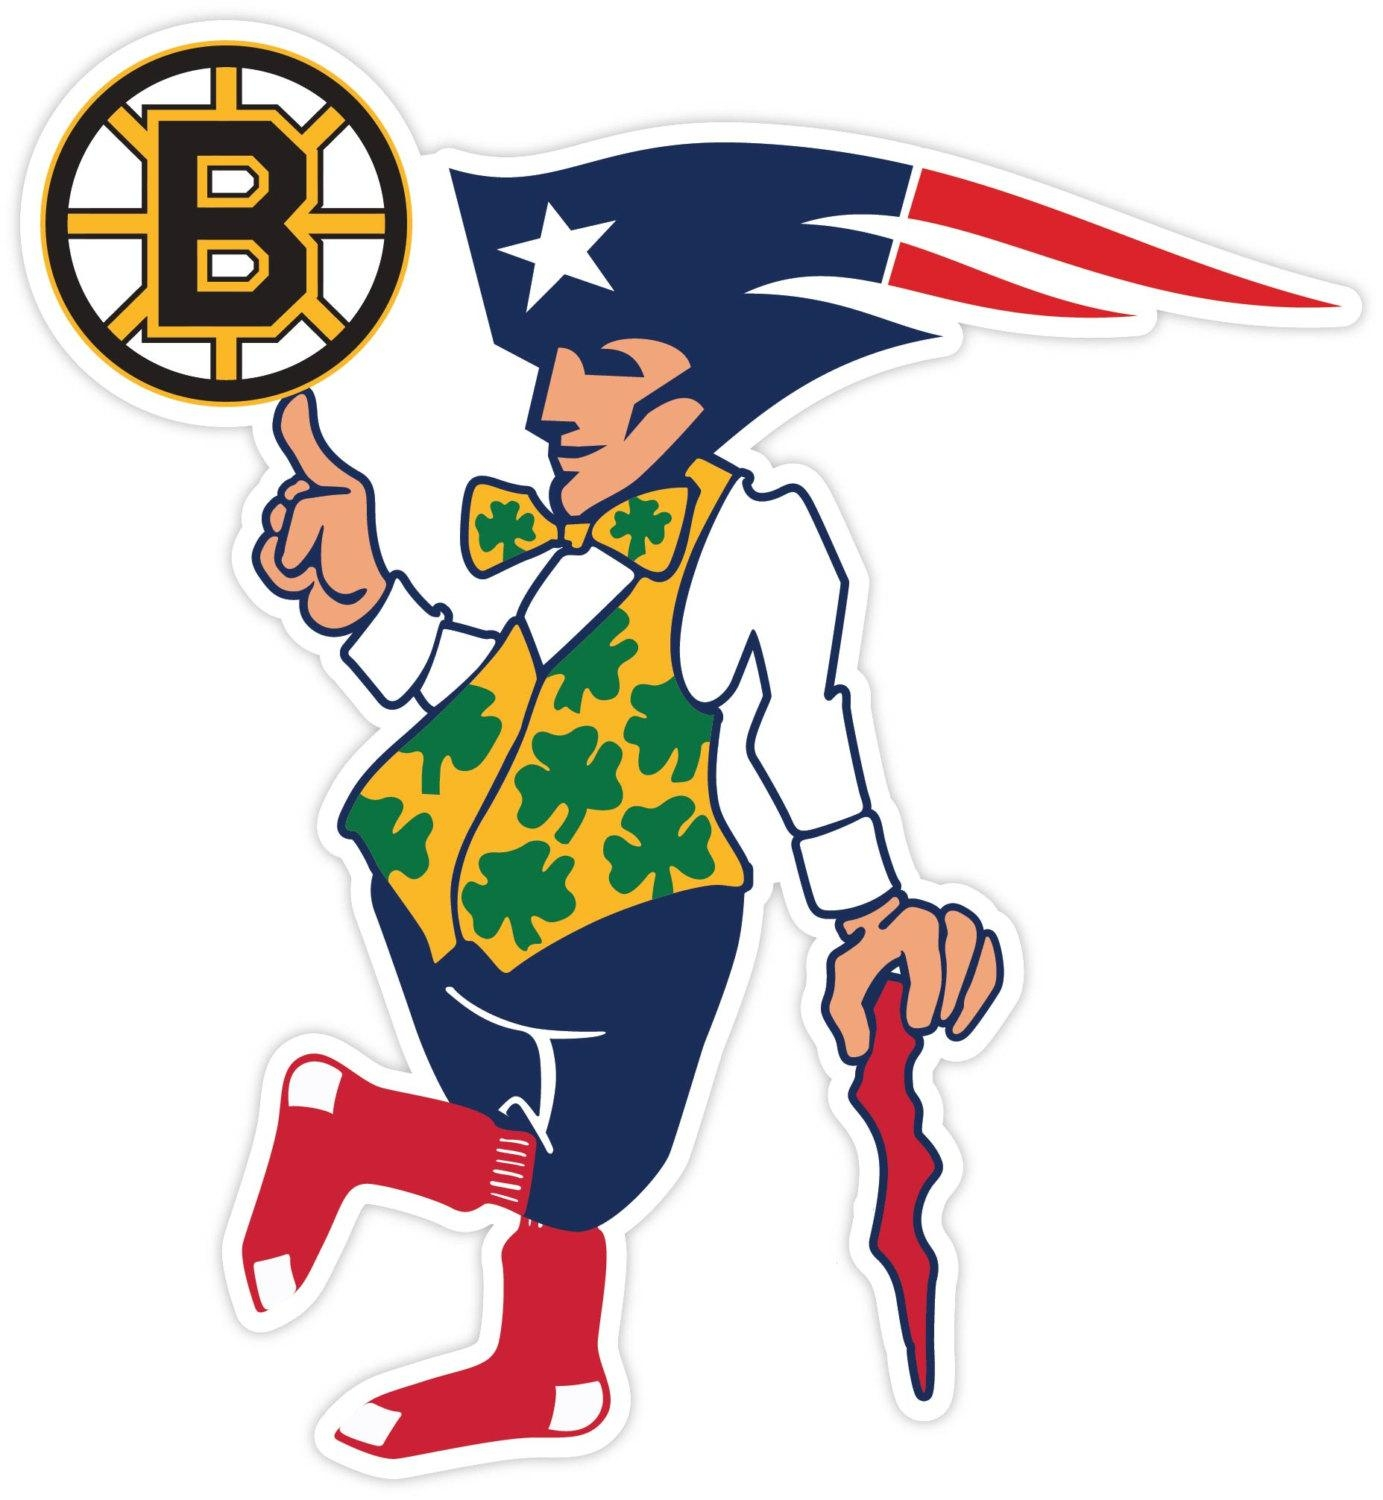 Boston Fan Sport Teams Red Sox Bruins Celtics Patriots Vinyl for Red Sox Wall Decals